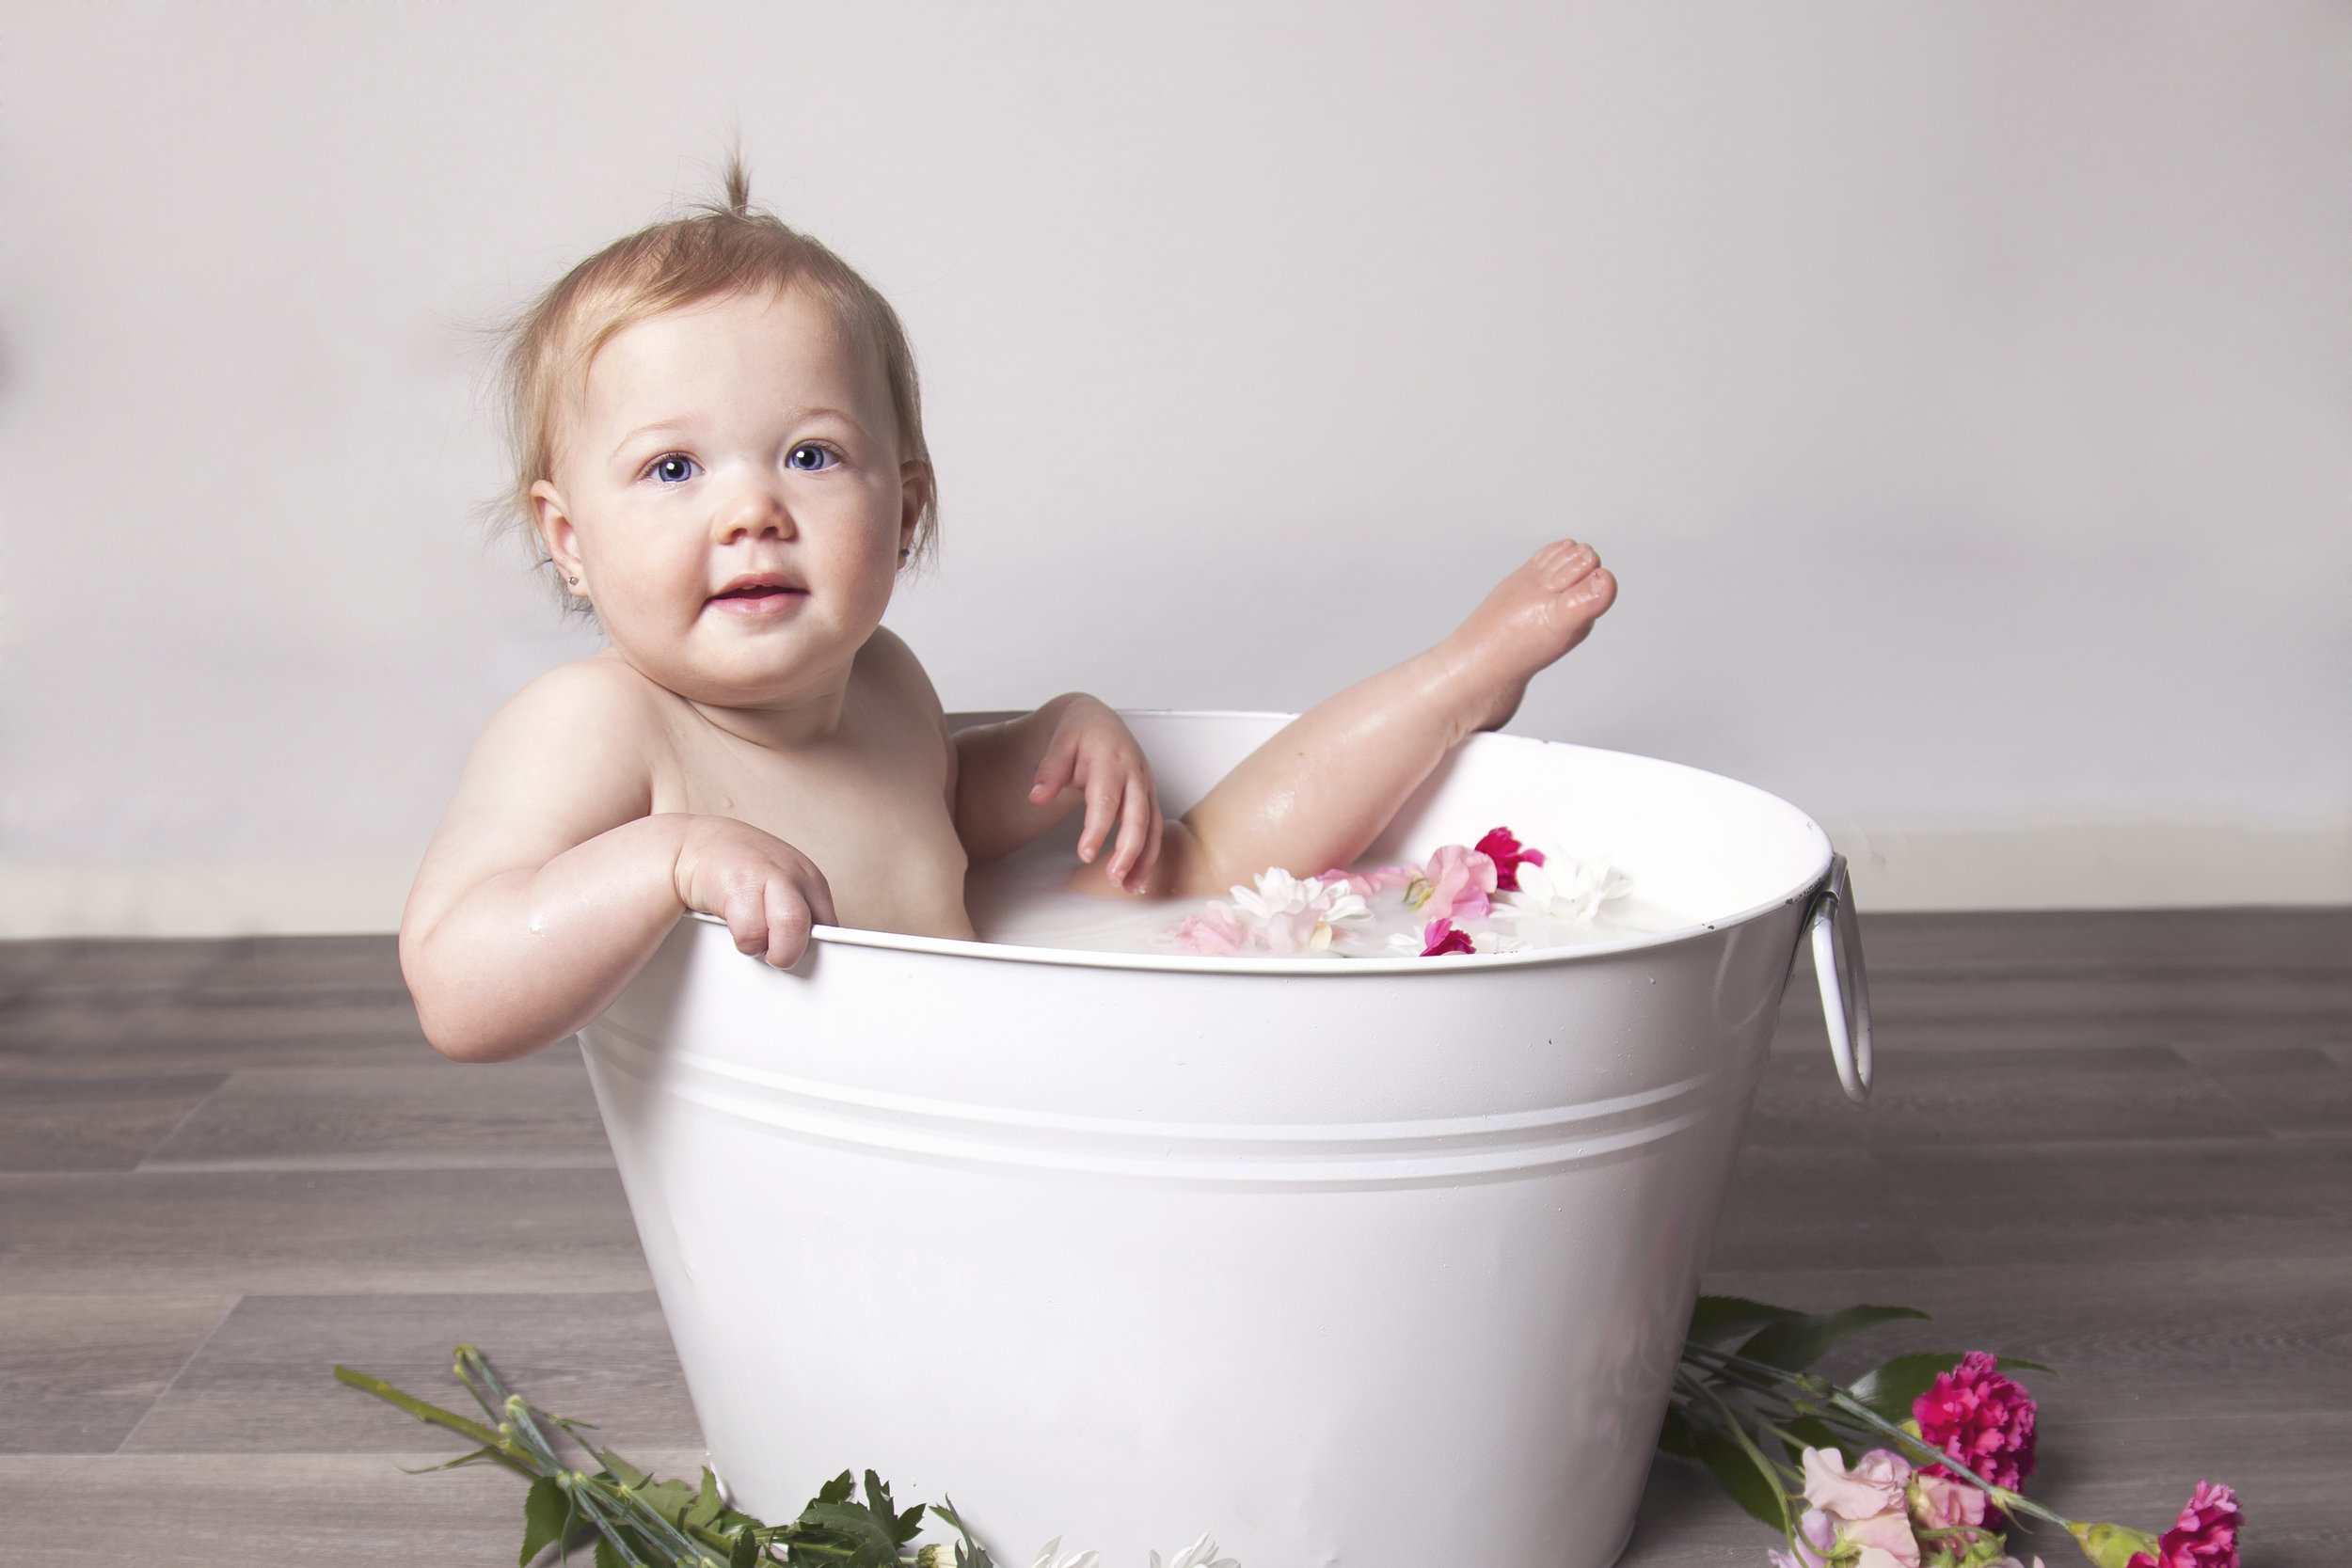 Toddler Milk Bath with Flowers